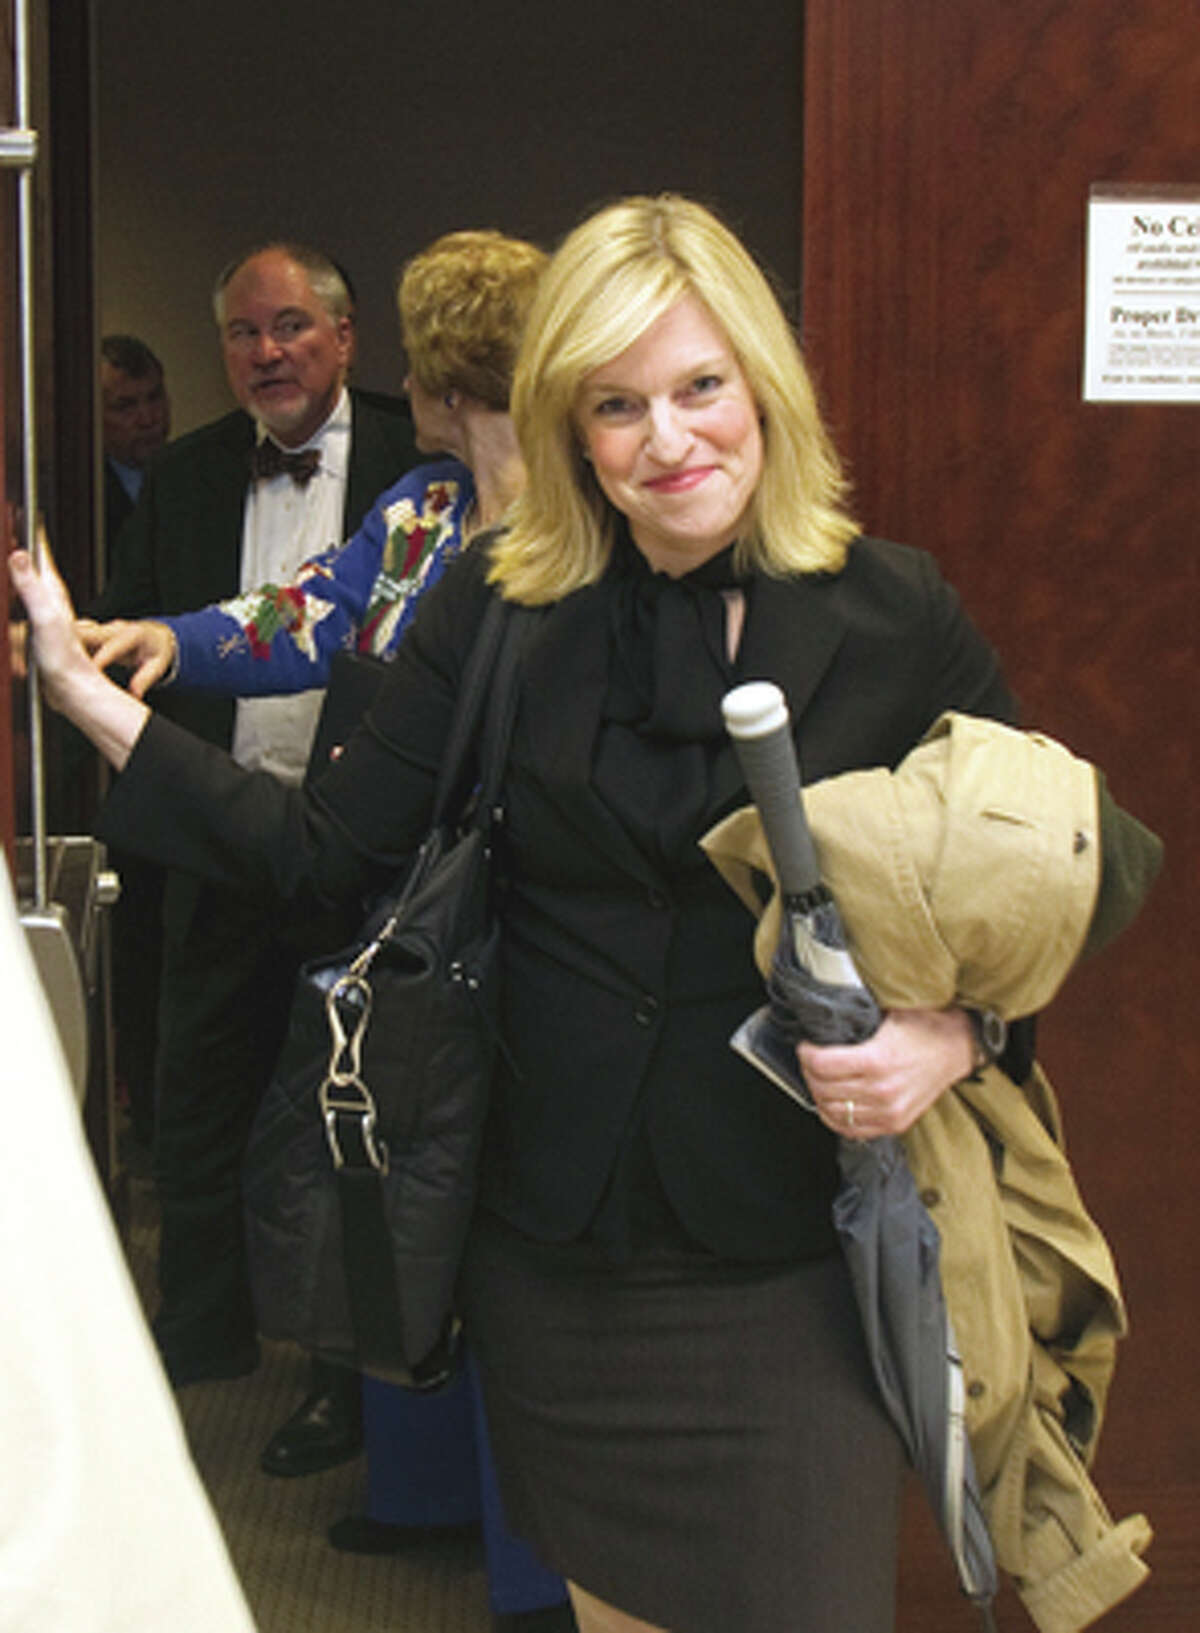 Rachel Palmer leaves the 185th District Court after State District Judge Susan Brown refused to force her to answer grand jury questions Tuesday, Dec. 20, 2011, in Houston. Special prosecutors over a grand jury investigating the district attorney's office will either have to offer Rachel Palmer immunity for her testimony or move on without her. (Cody Duty / Houston Chronicle)